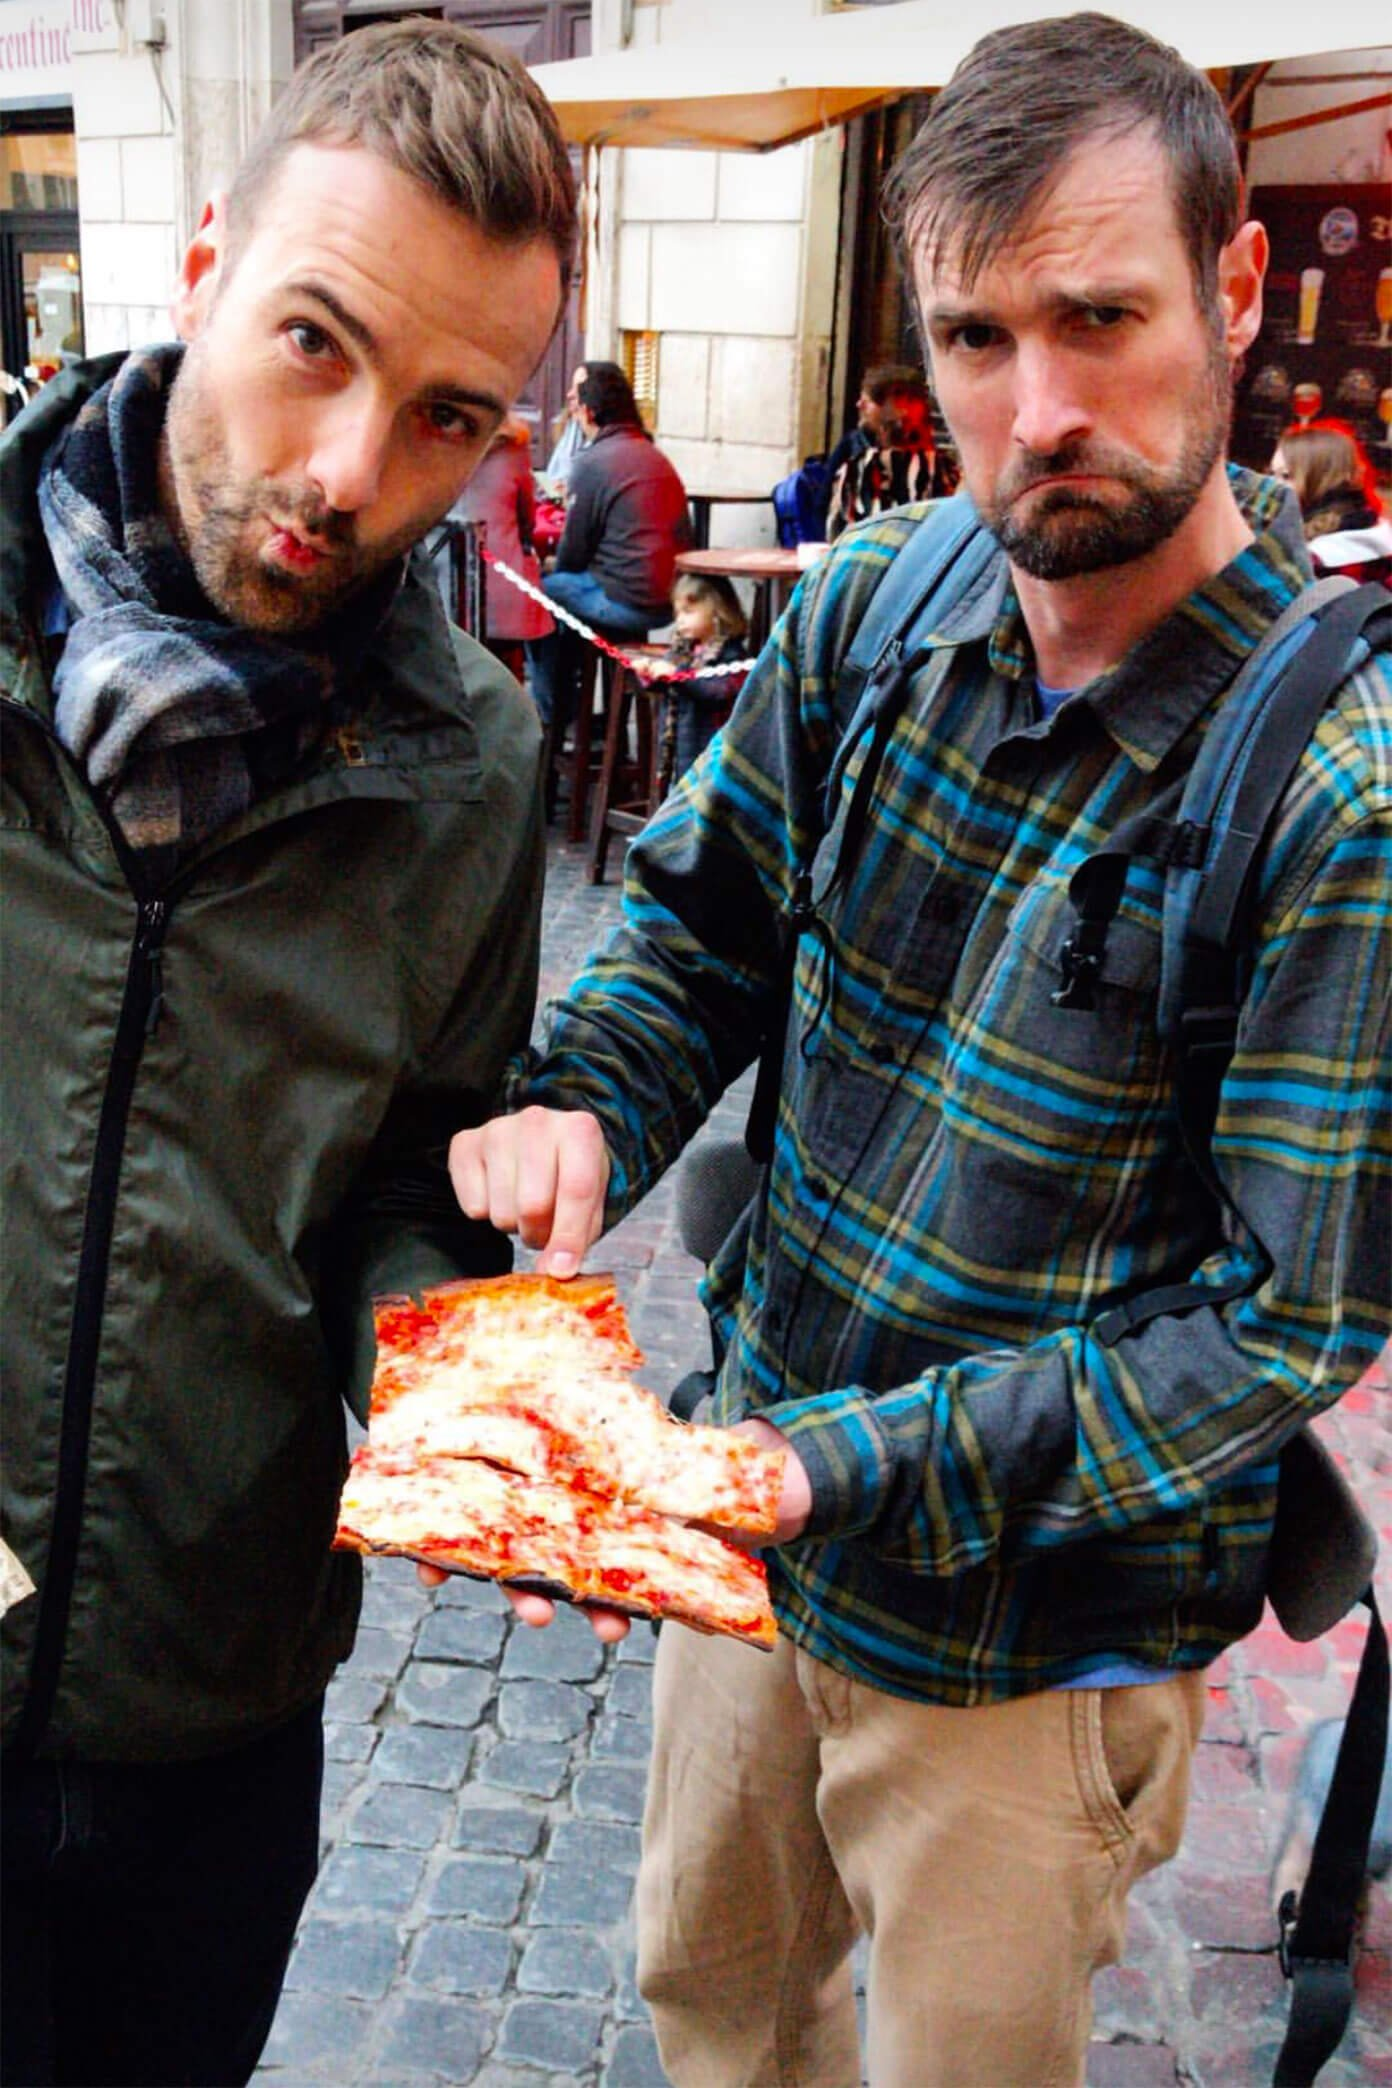 Eating Italy Taste of Testaccio Food Tour in Rome